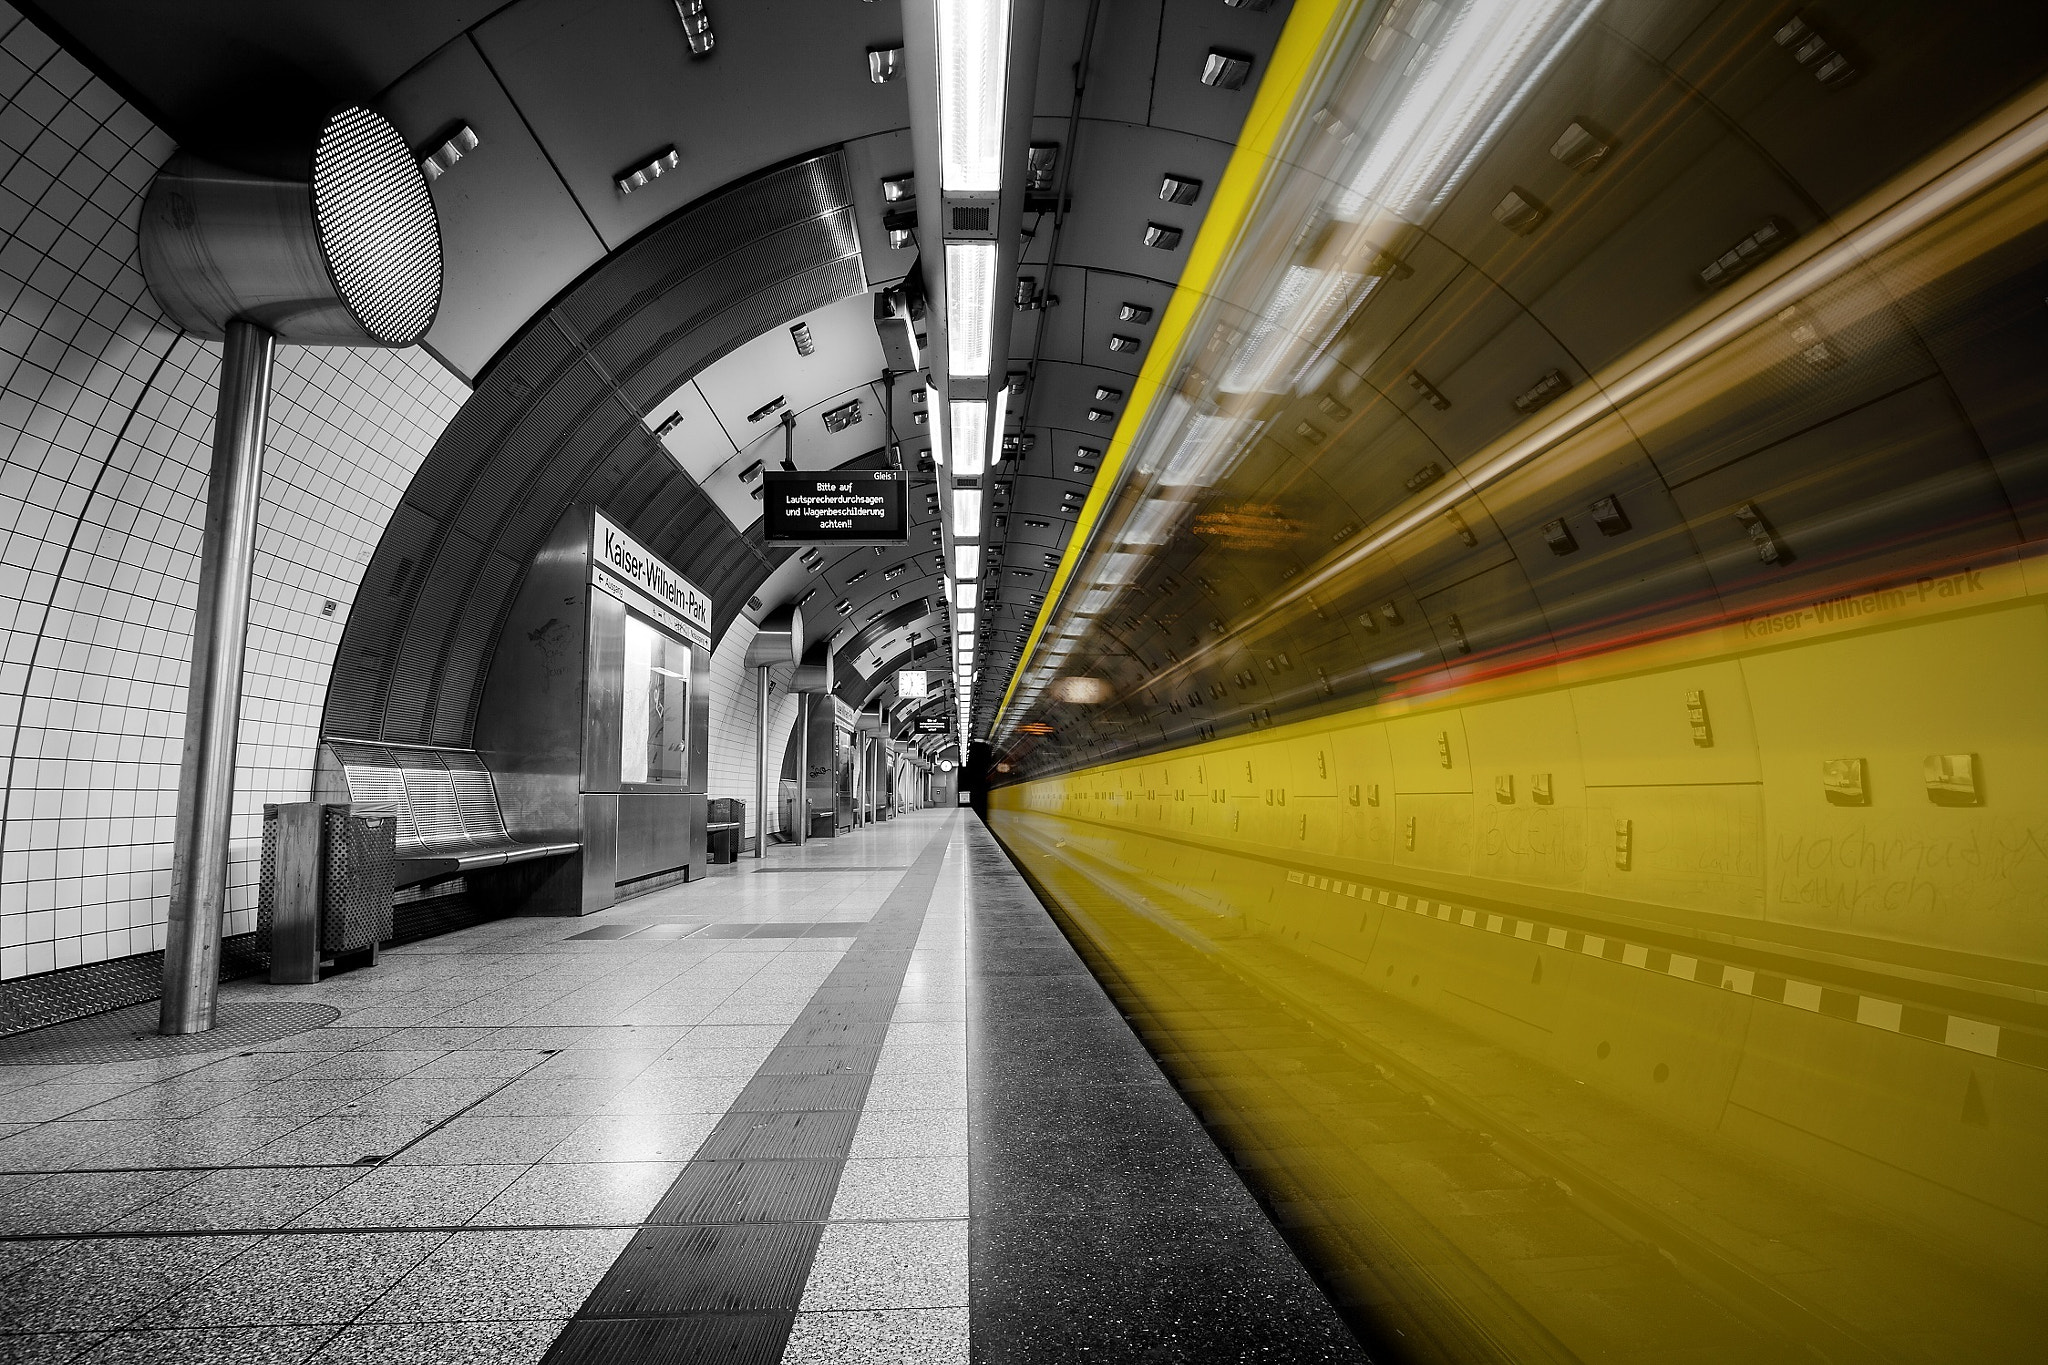 Photograph In the tube by Christian Riedel on 500px